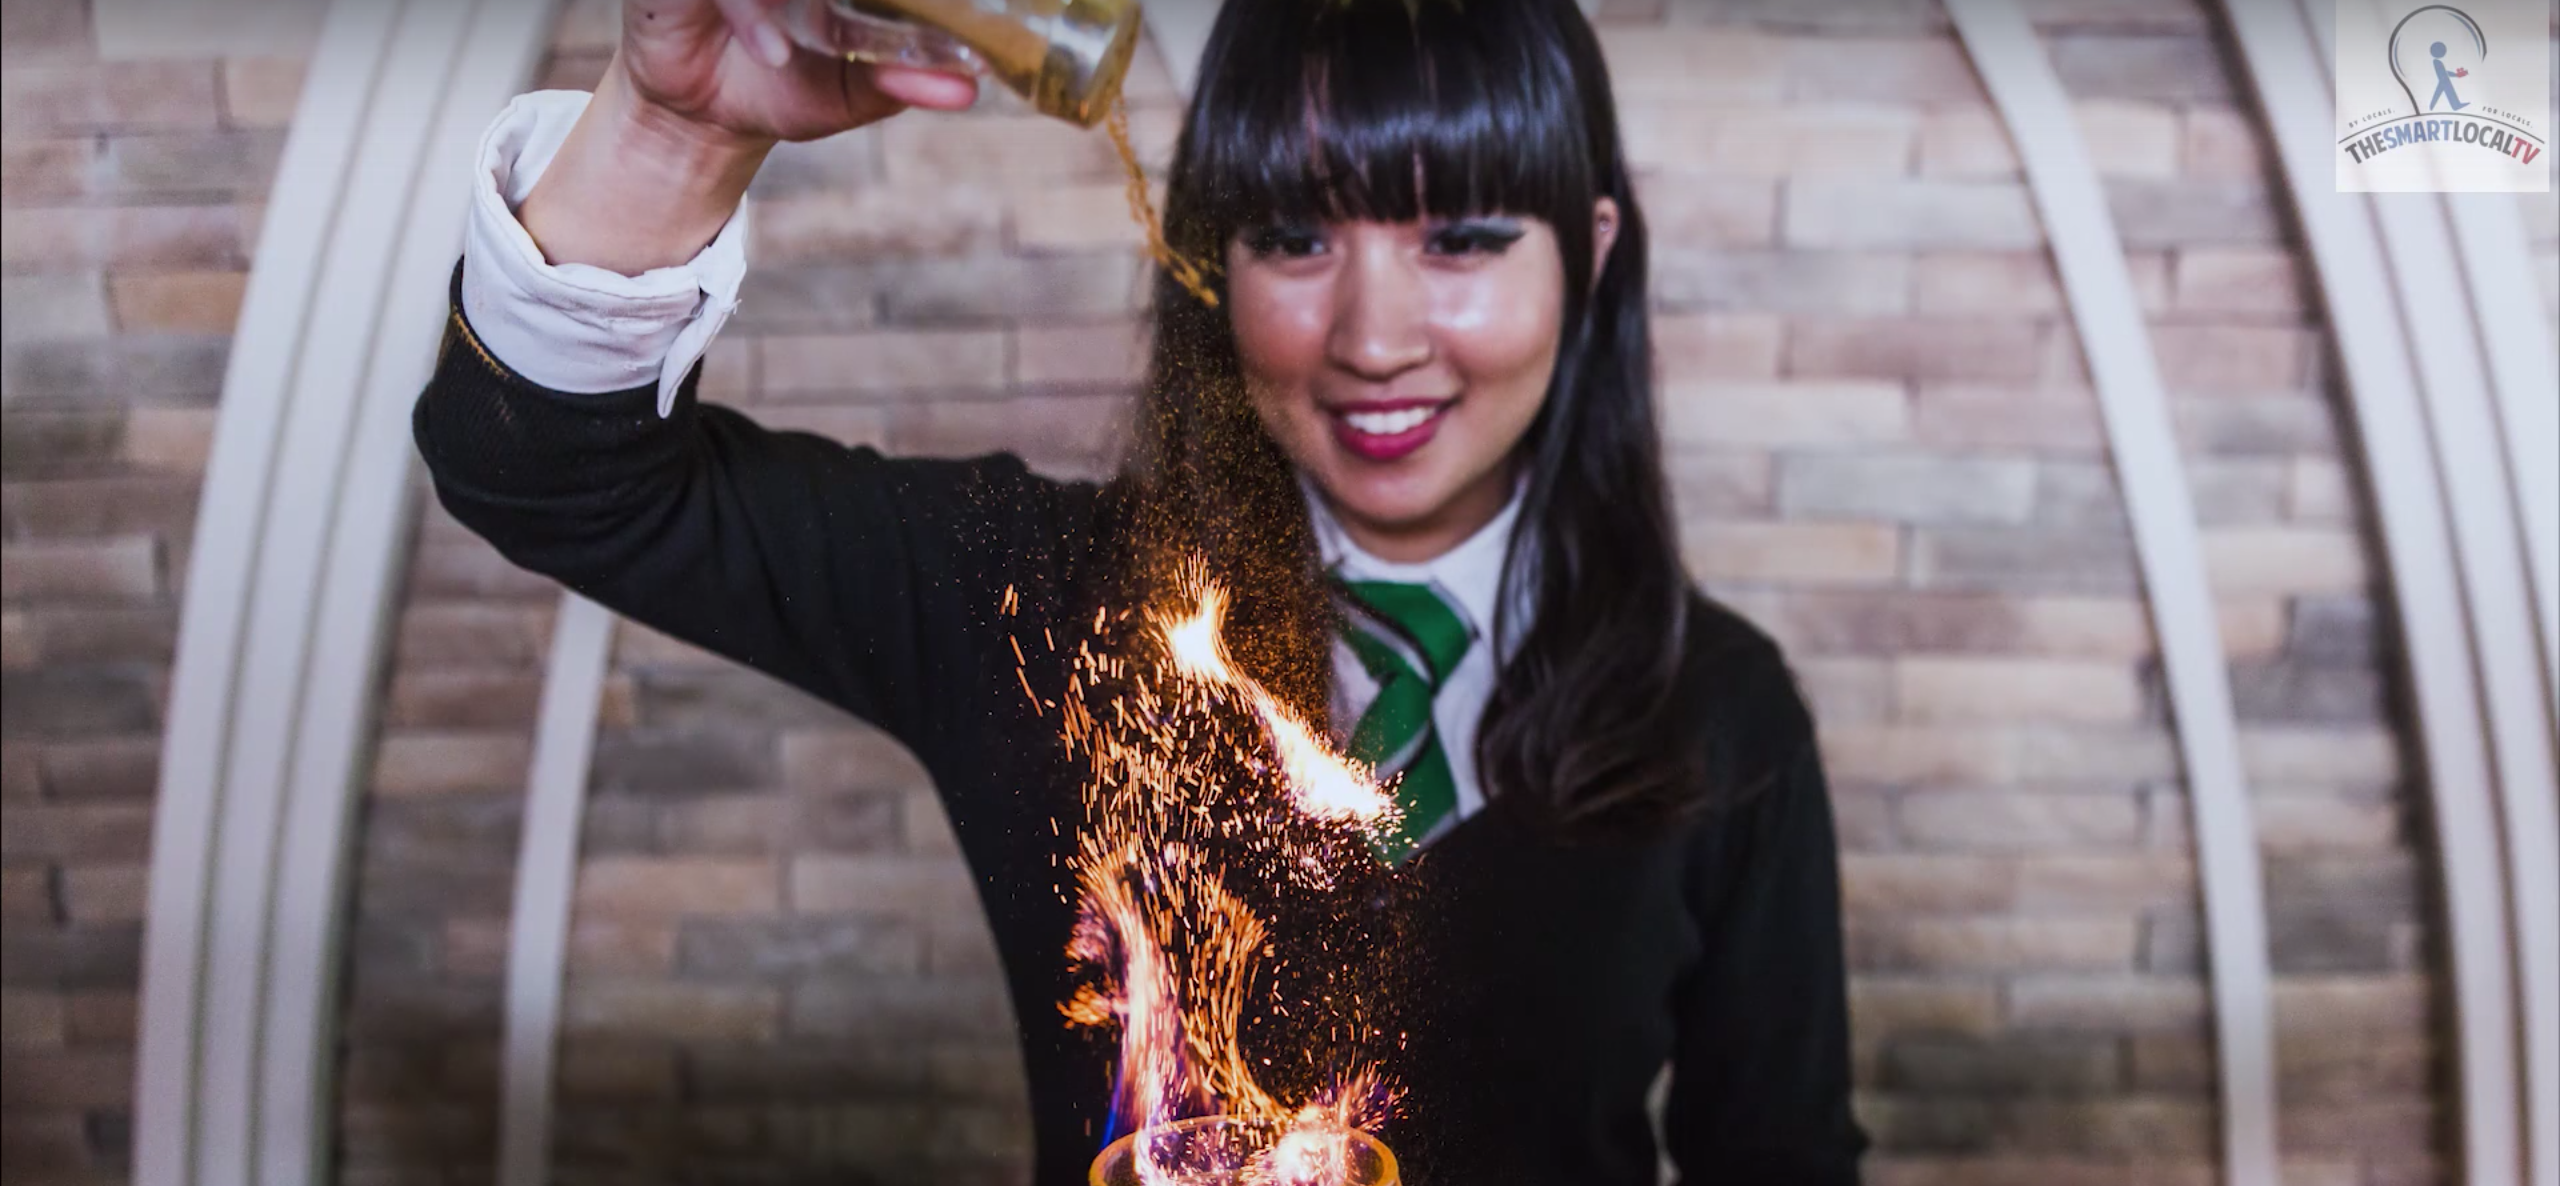 """There's officially a """"Harry Potter"""" cafe that serves literal Goblets of Fire ... with booze"""